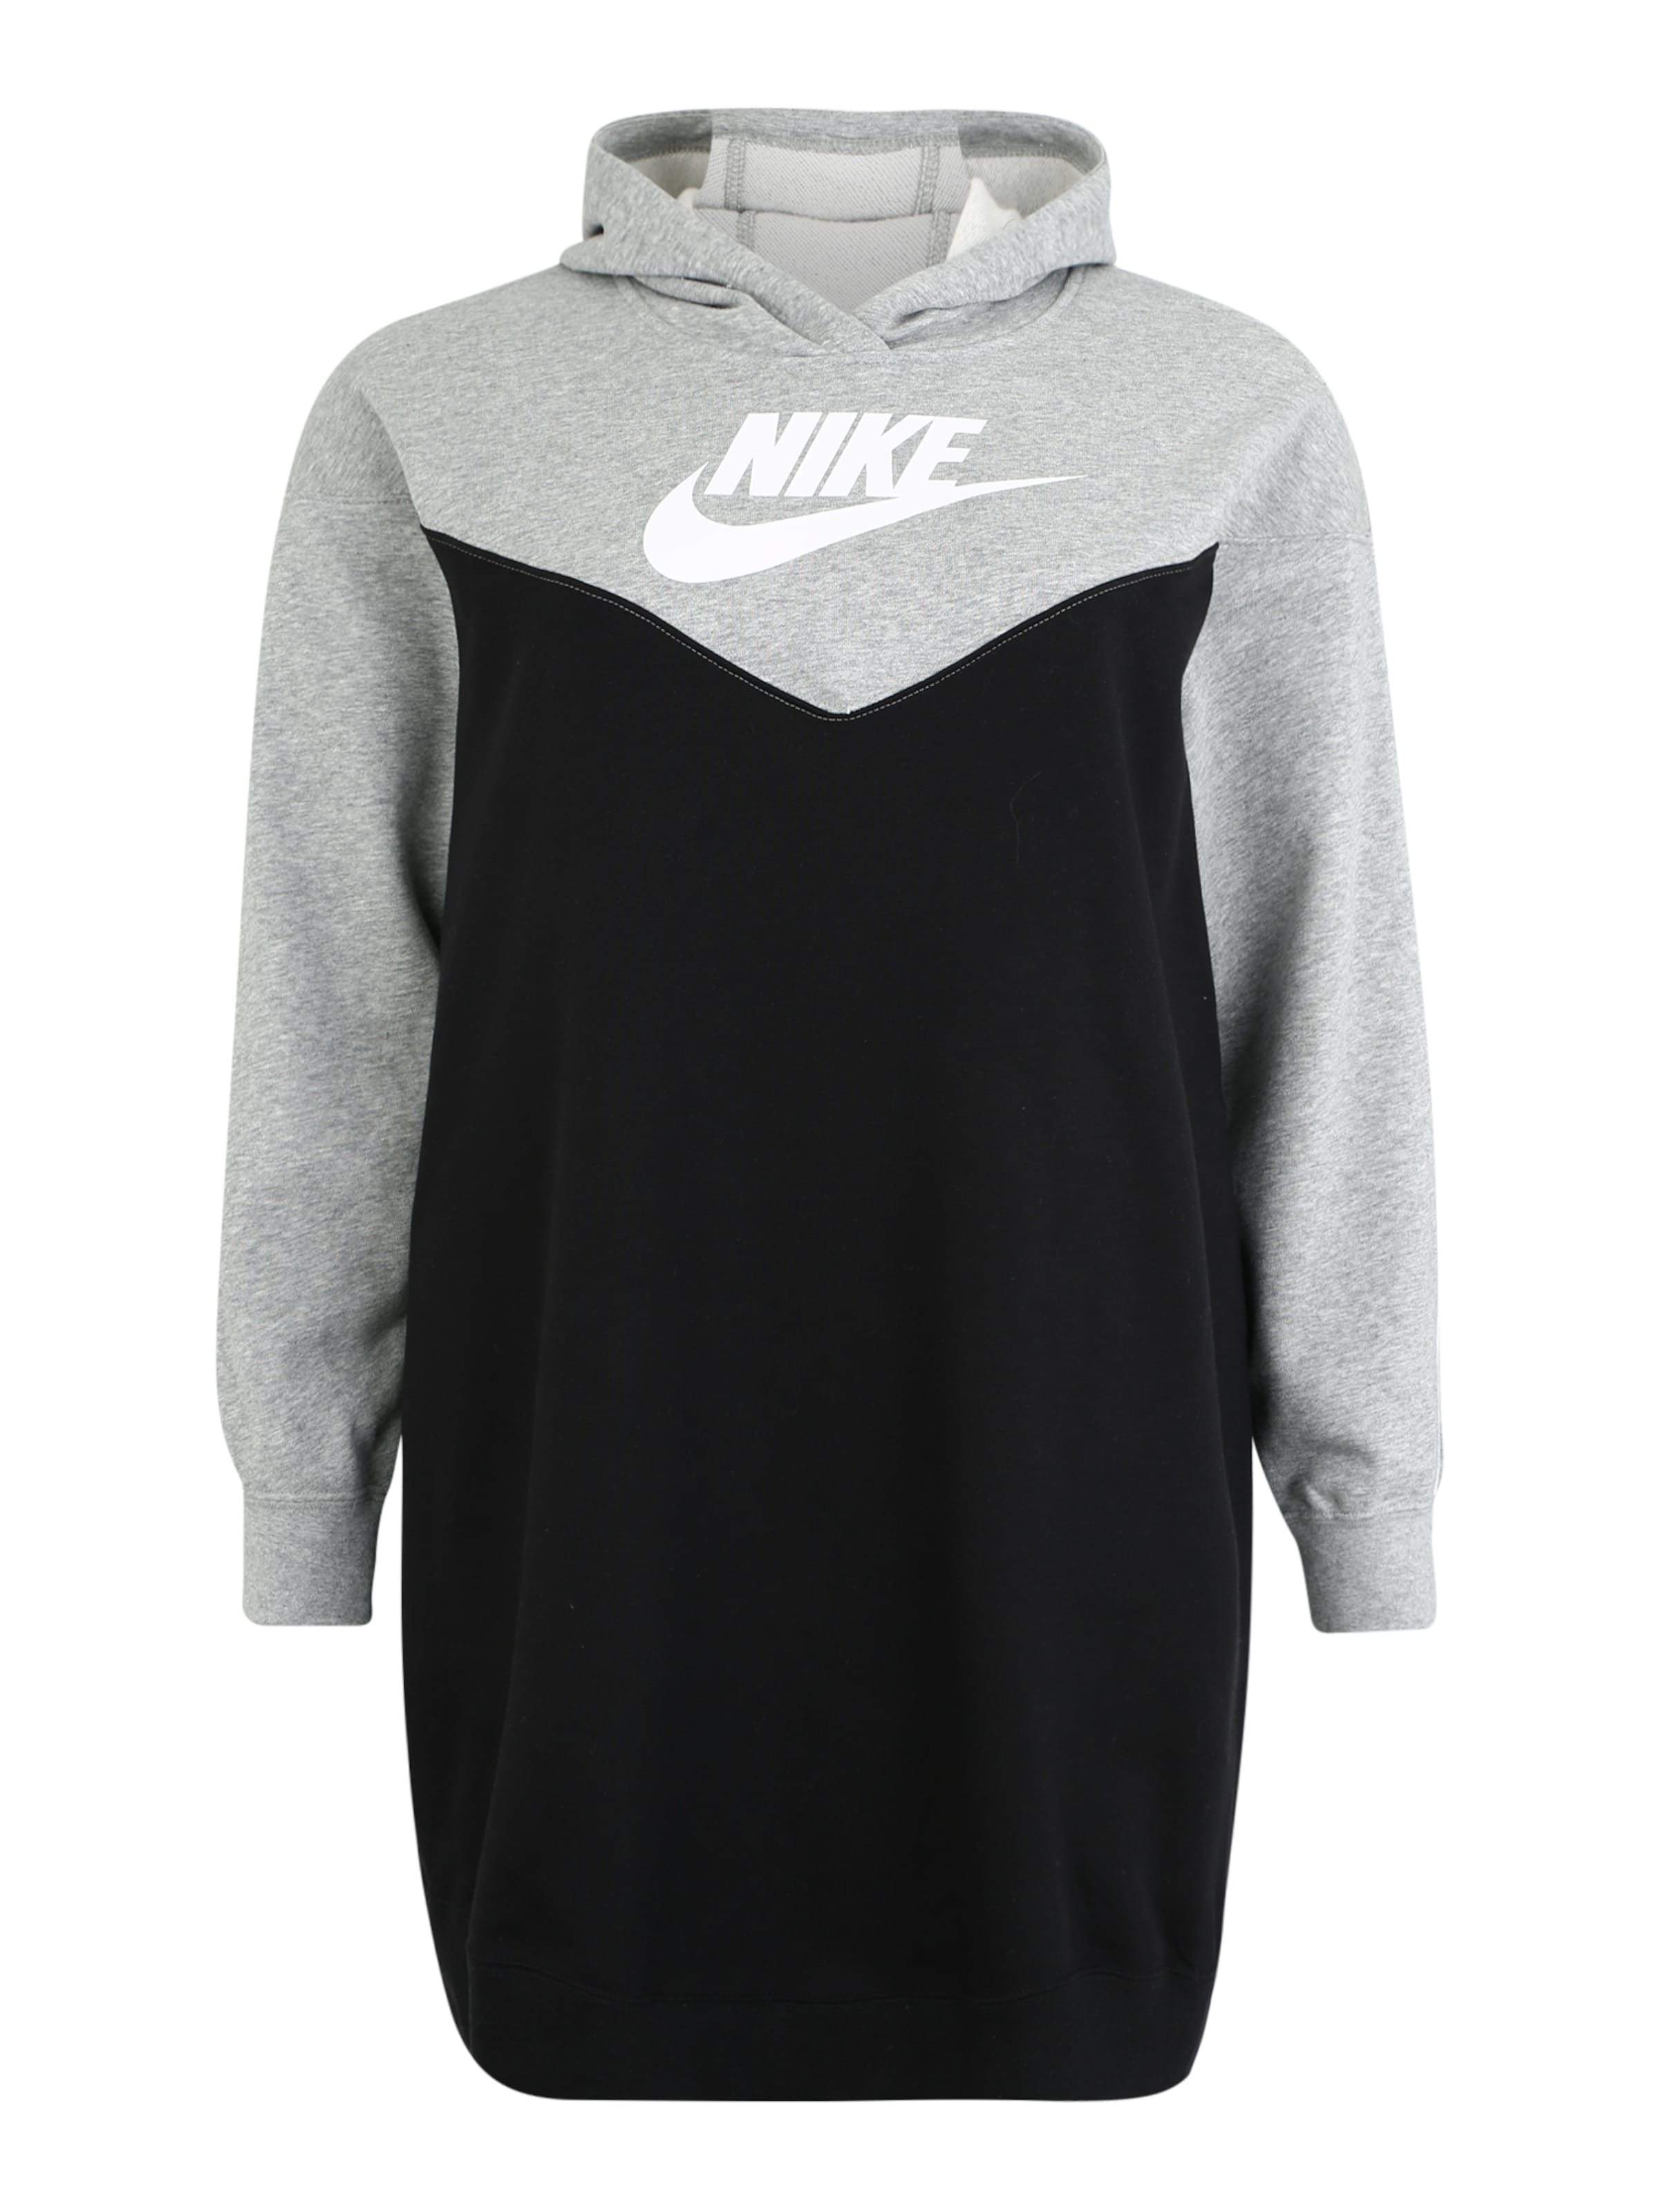 Nsw Robe Hoody Nike Sportswear Hrtg 'w Sb GrisNoir Dress En Plus' zMqSVpU